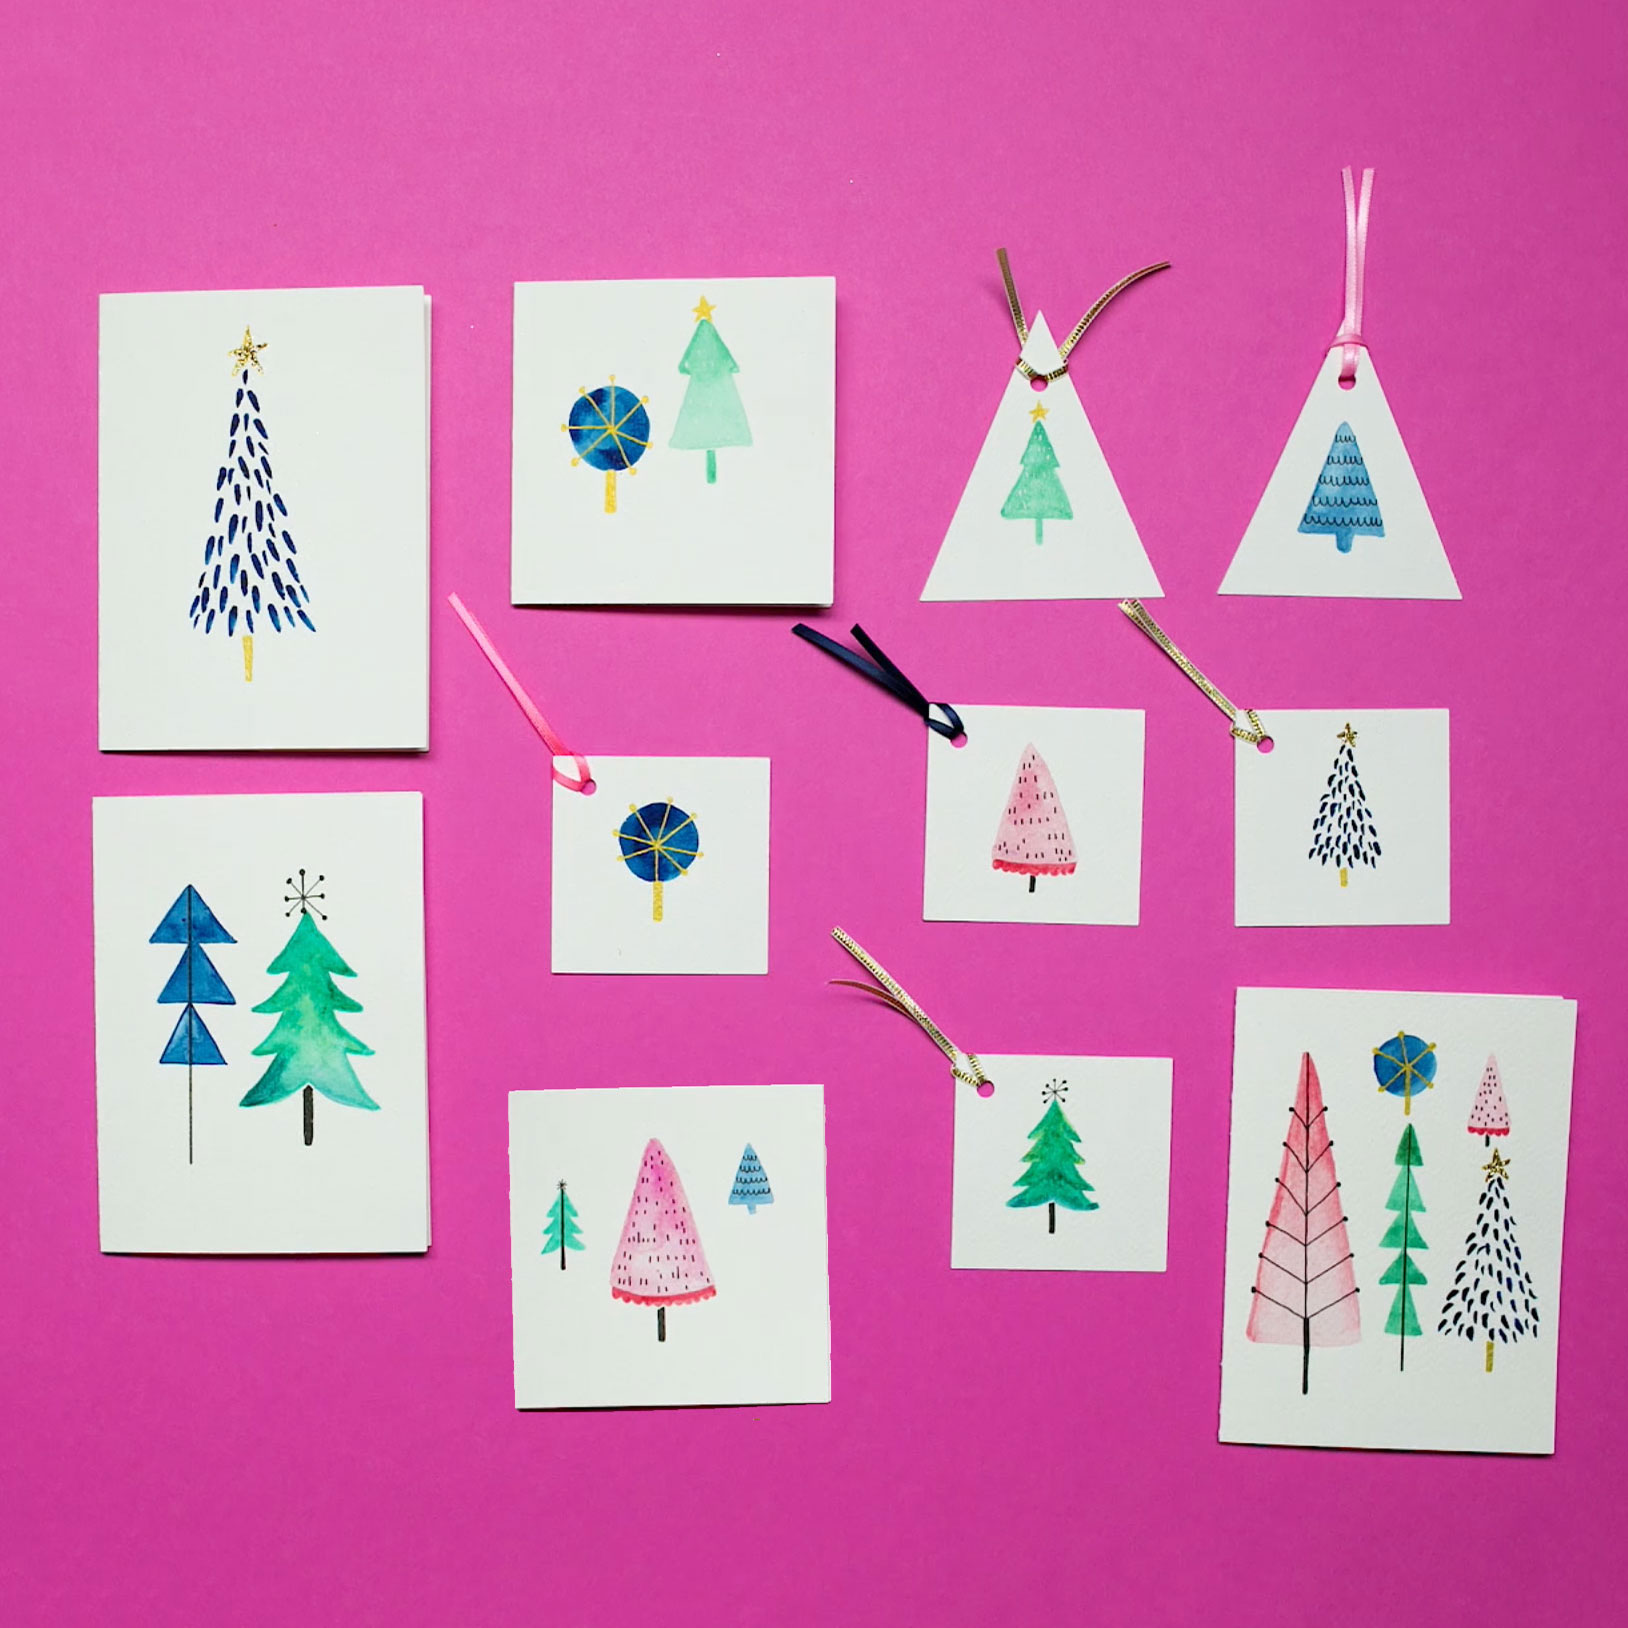 PAPERCHASE-HOW-TO-DRAW-A-CHRISTMAS-TREE-FEATURED-IMAGE